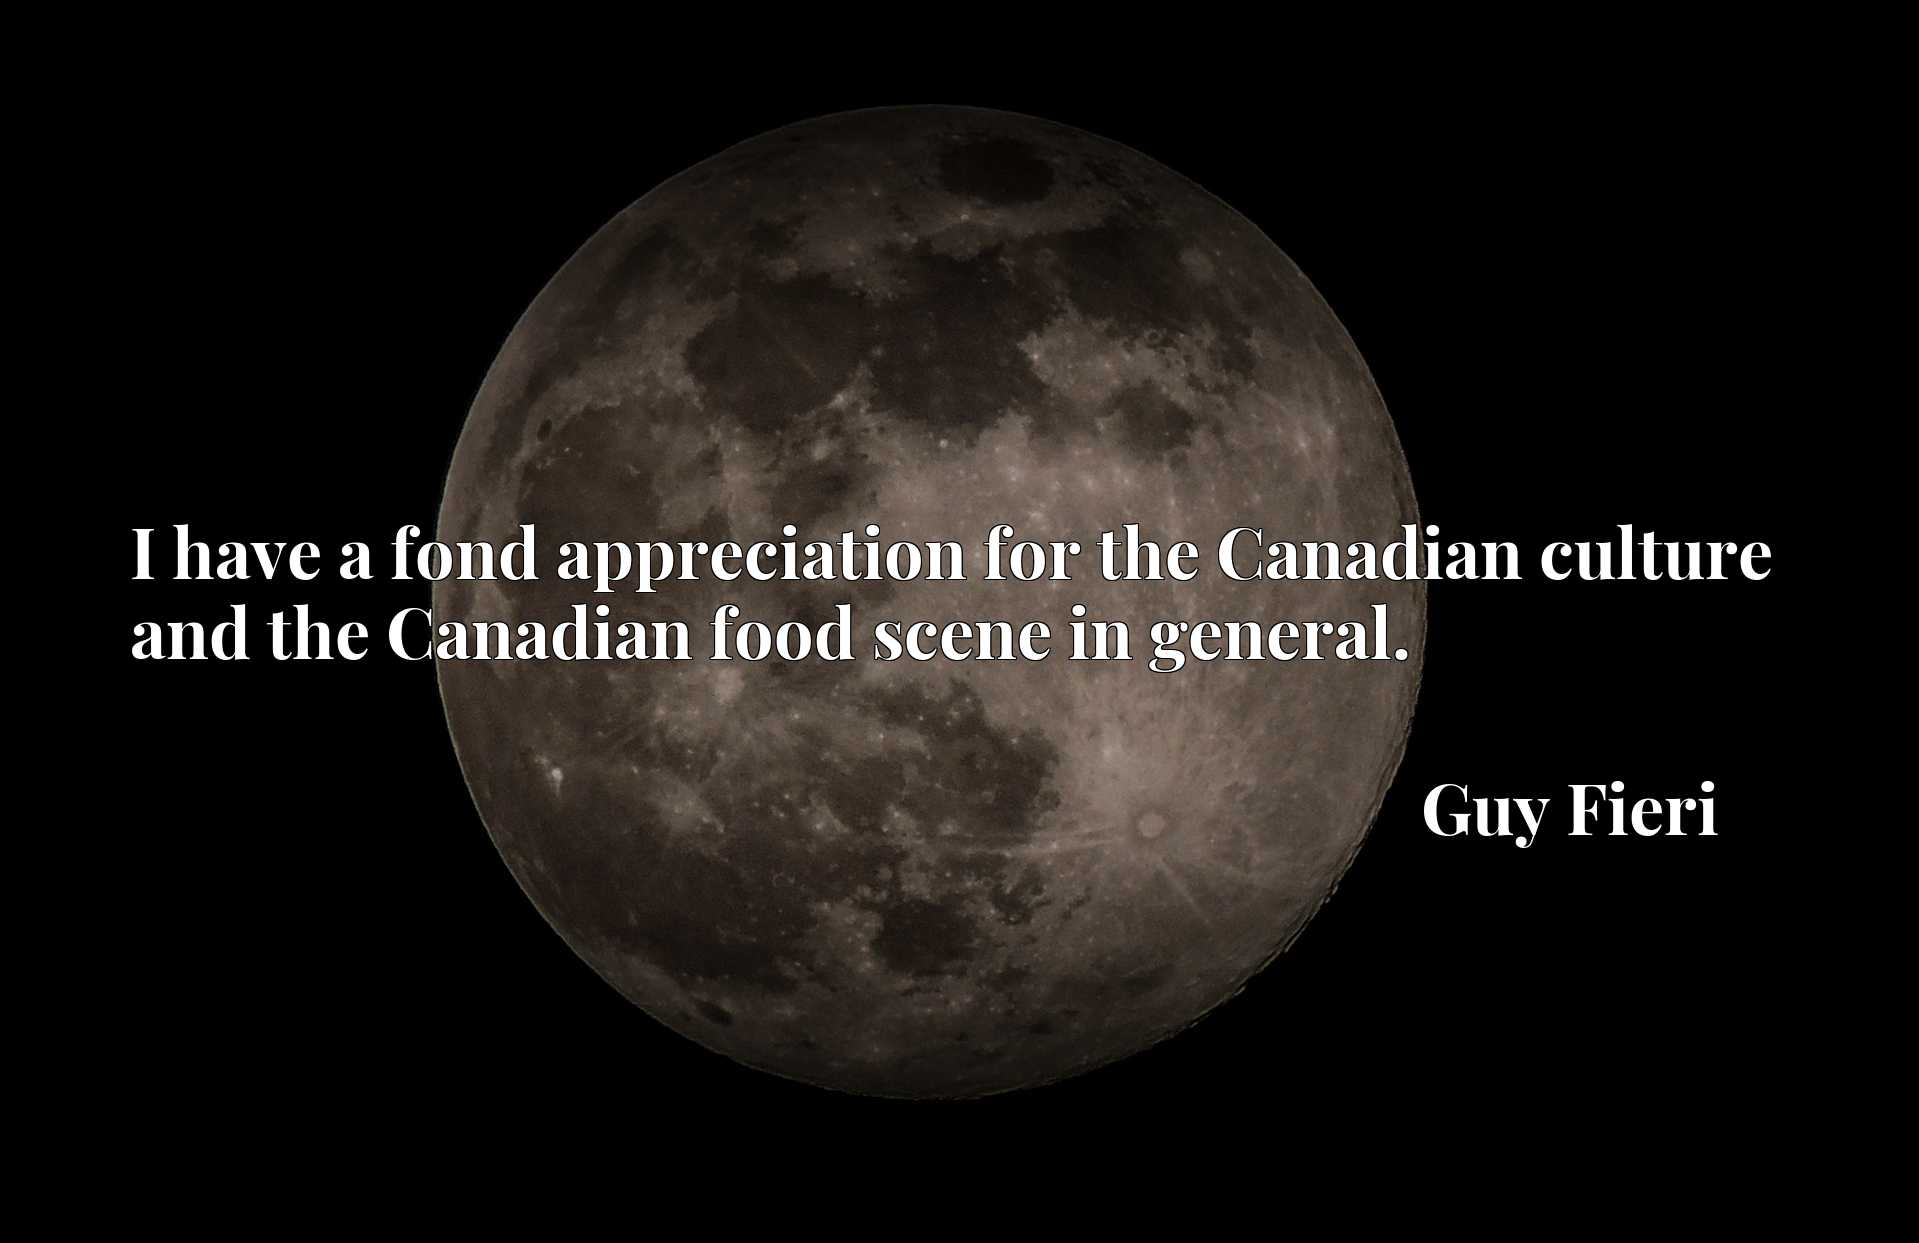 I have a fond appreciation for the Canadian culture and the Canadian food scene in general.